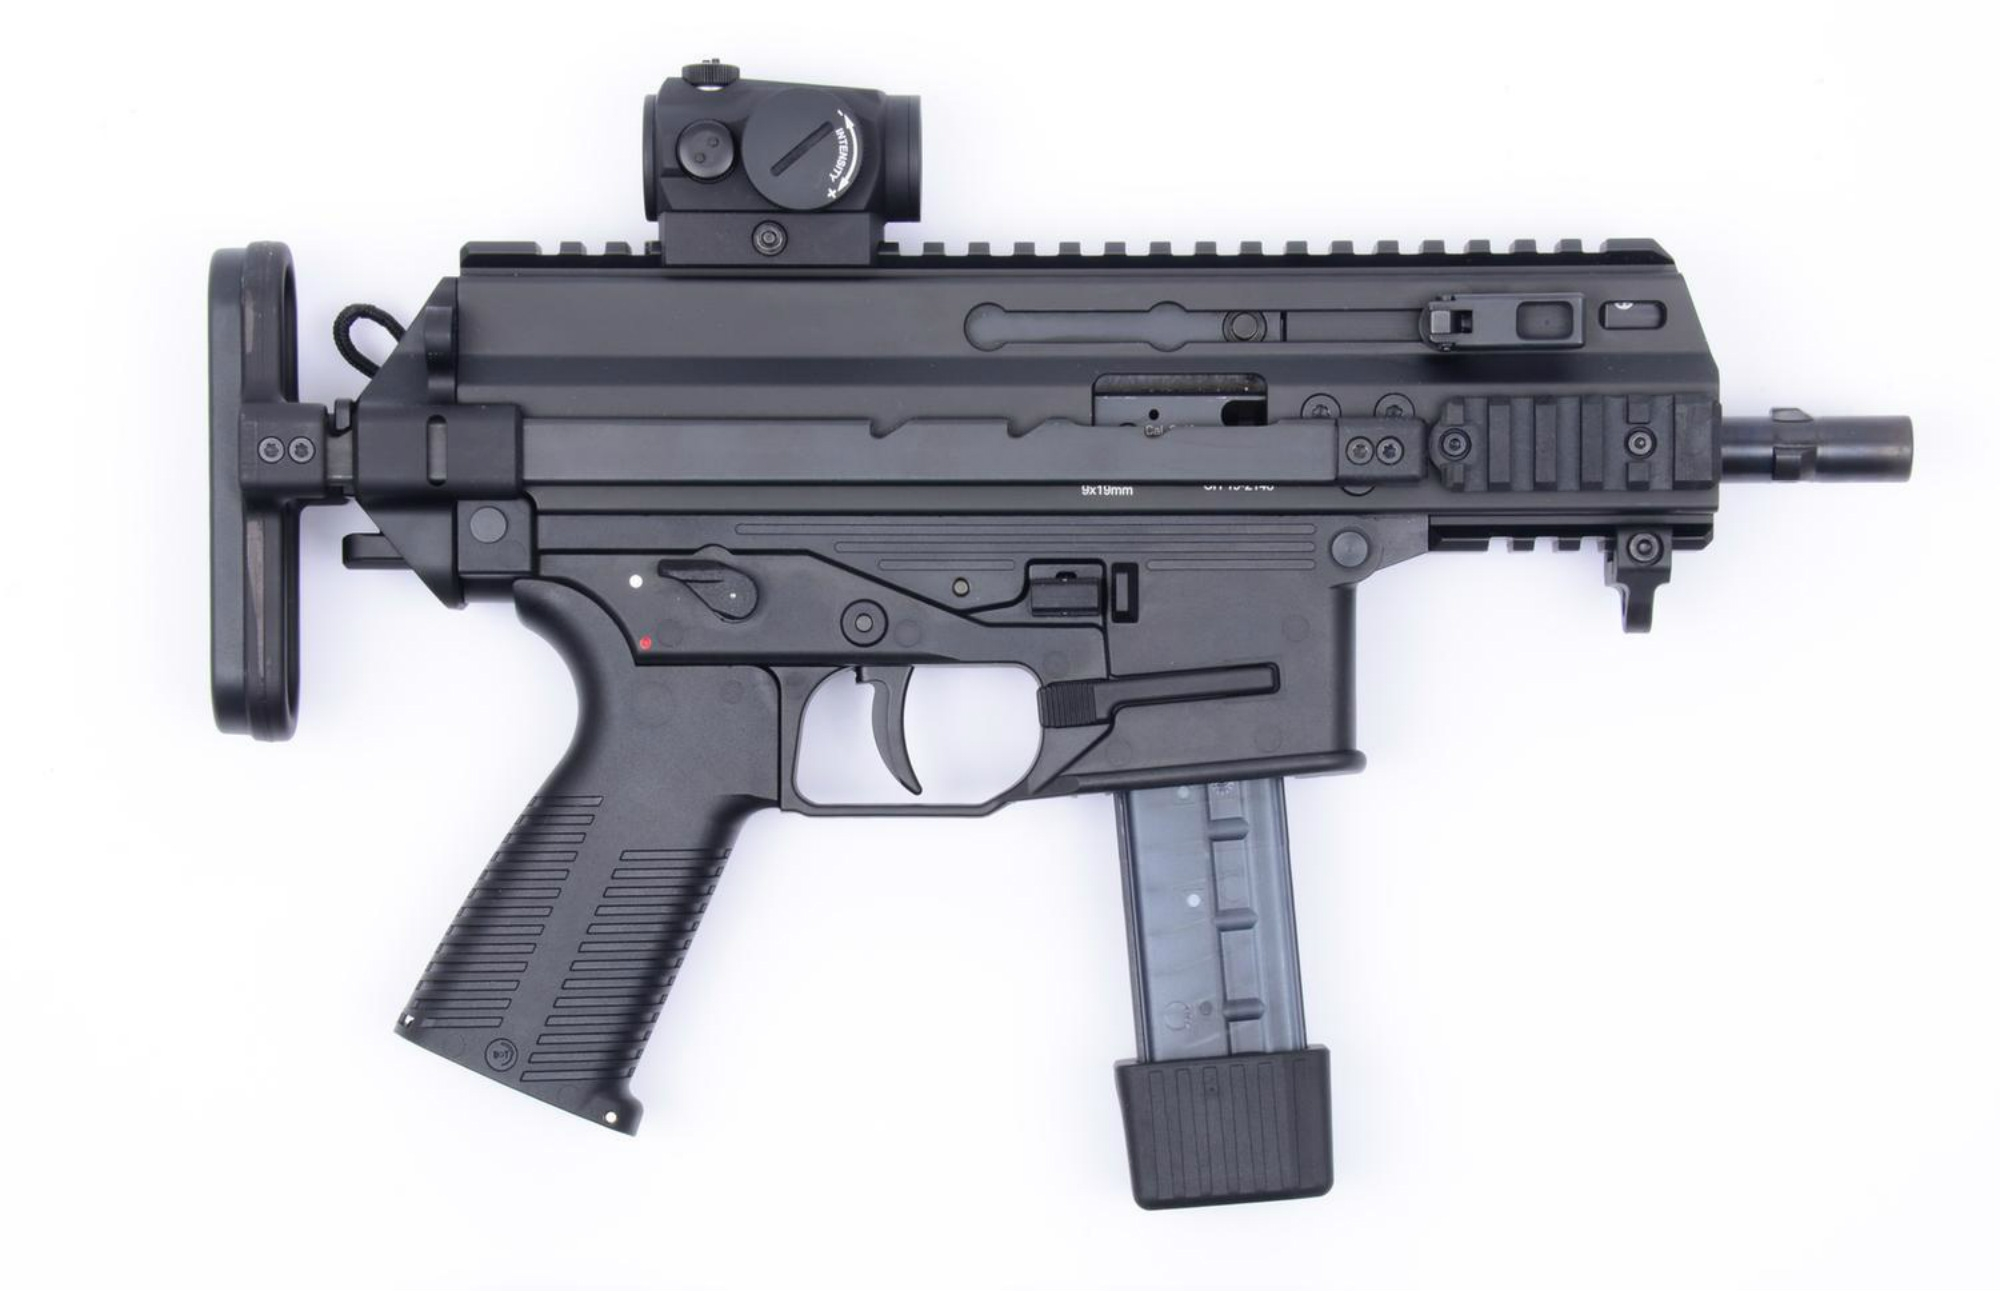 pro-zone: B&T USA selected for the US Army Sub Compact Weapon (SCW) program